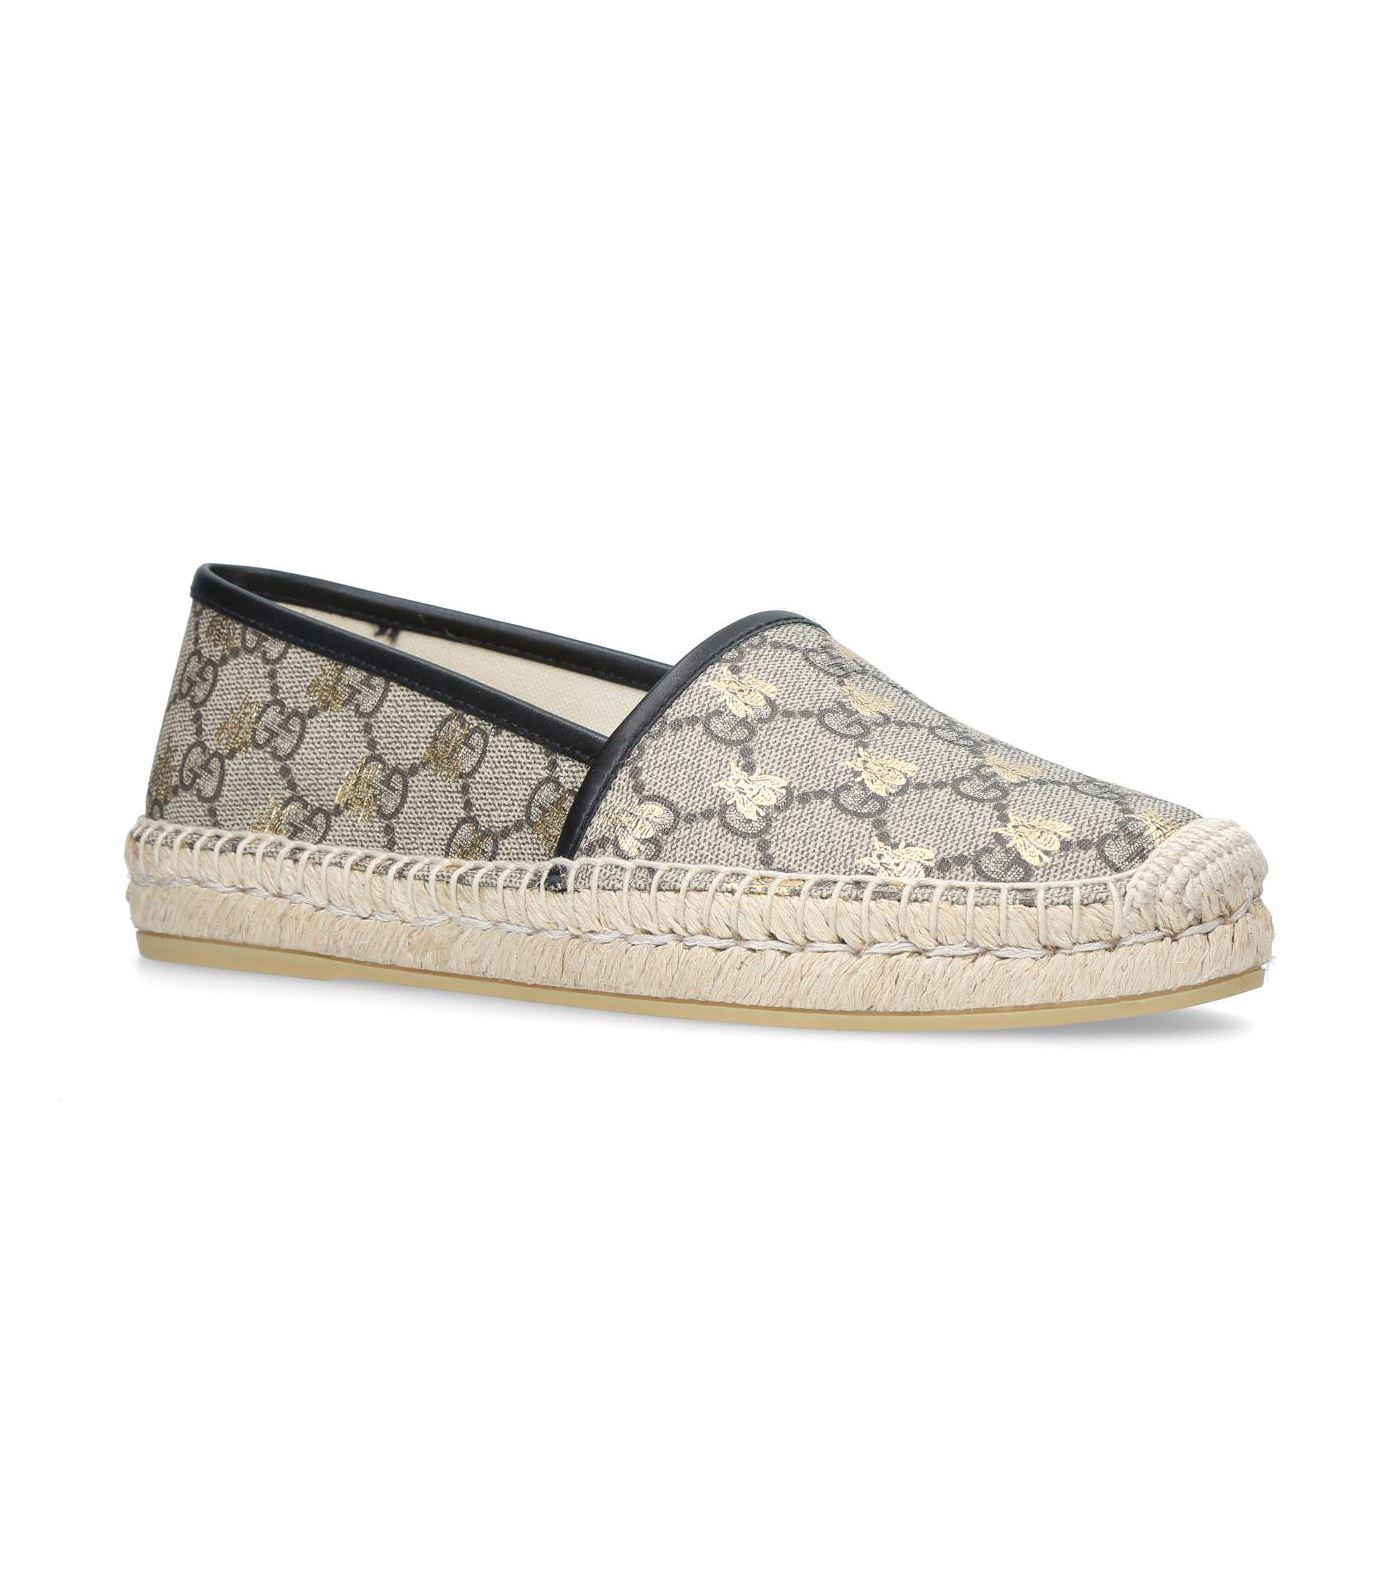 efd35fd0ff6 Gucci GG Supreme Bee Espadrilles in Natural - Save 1% - Lyst